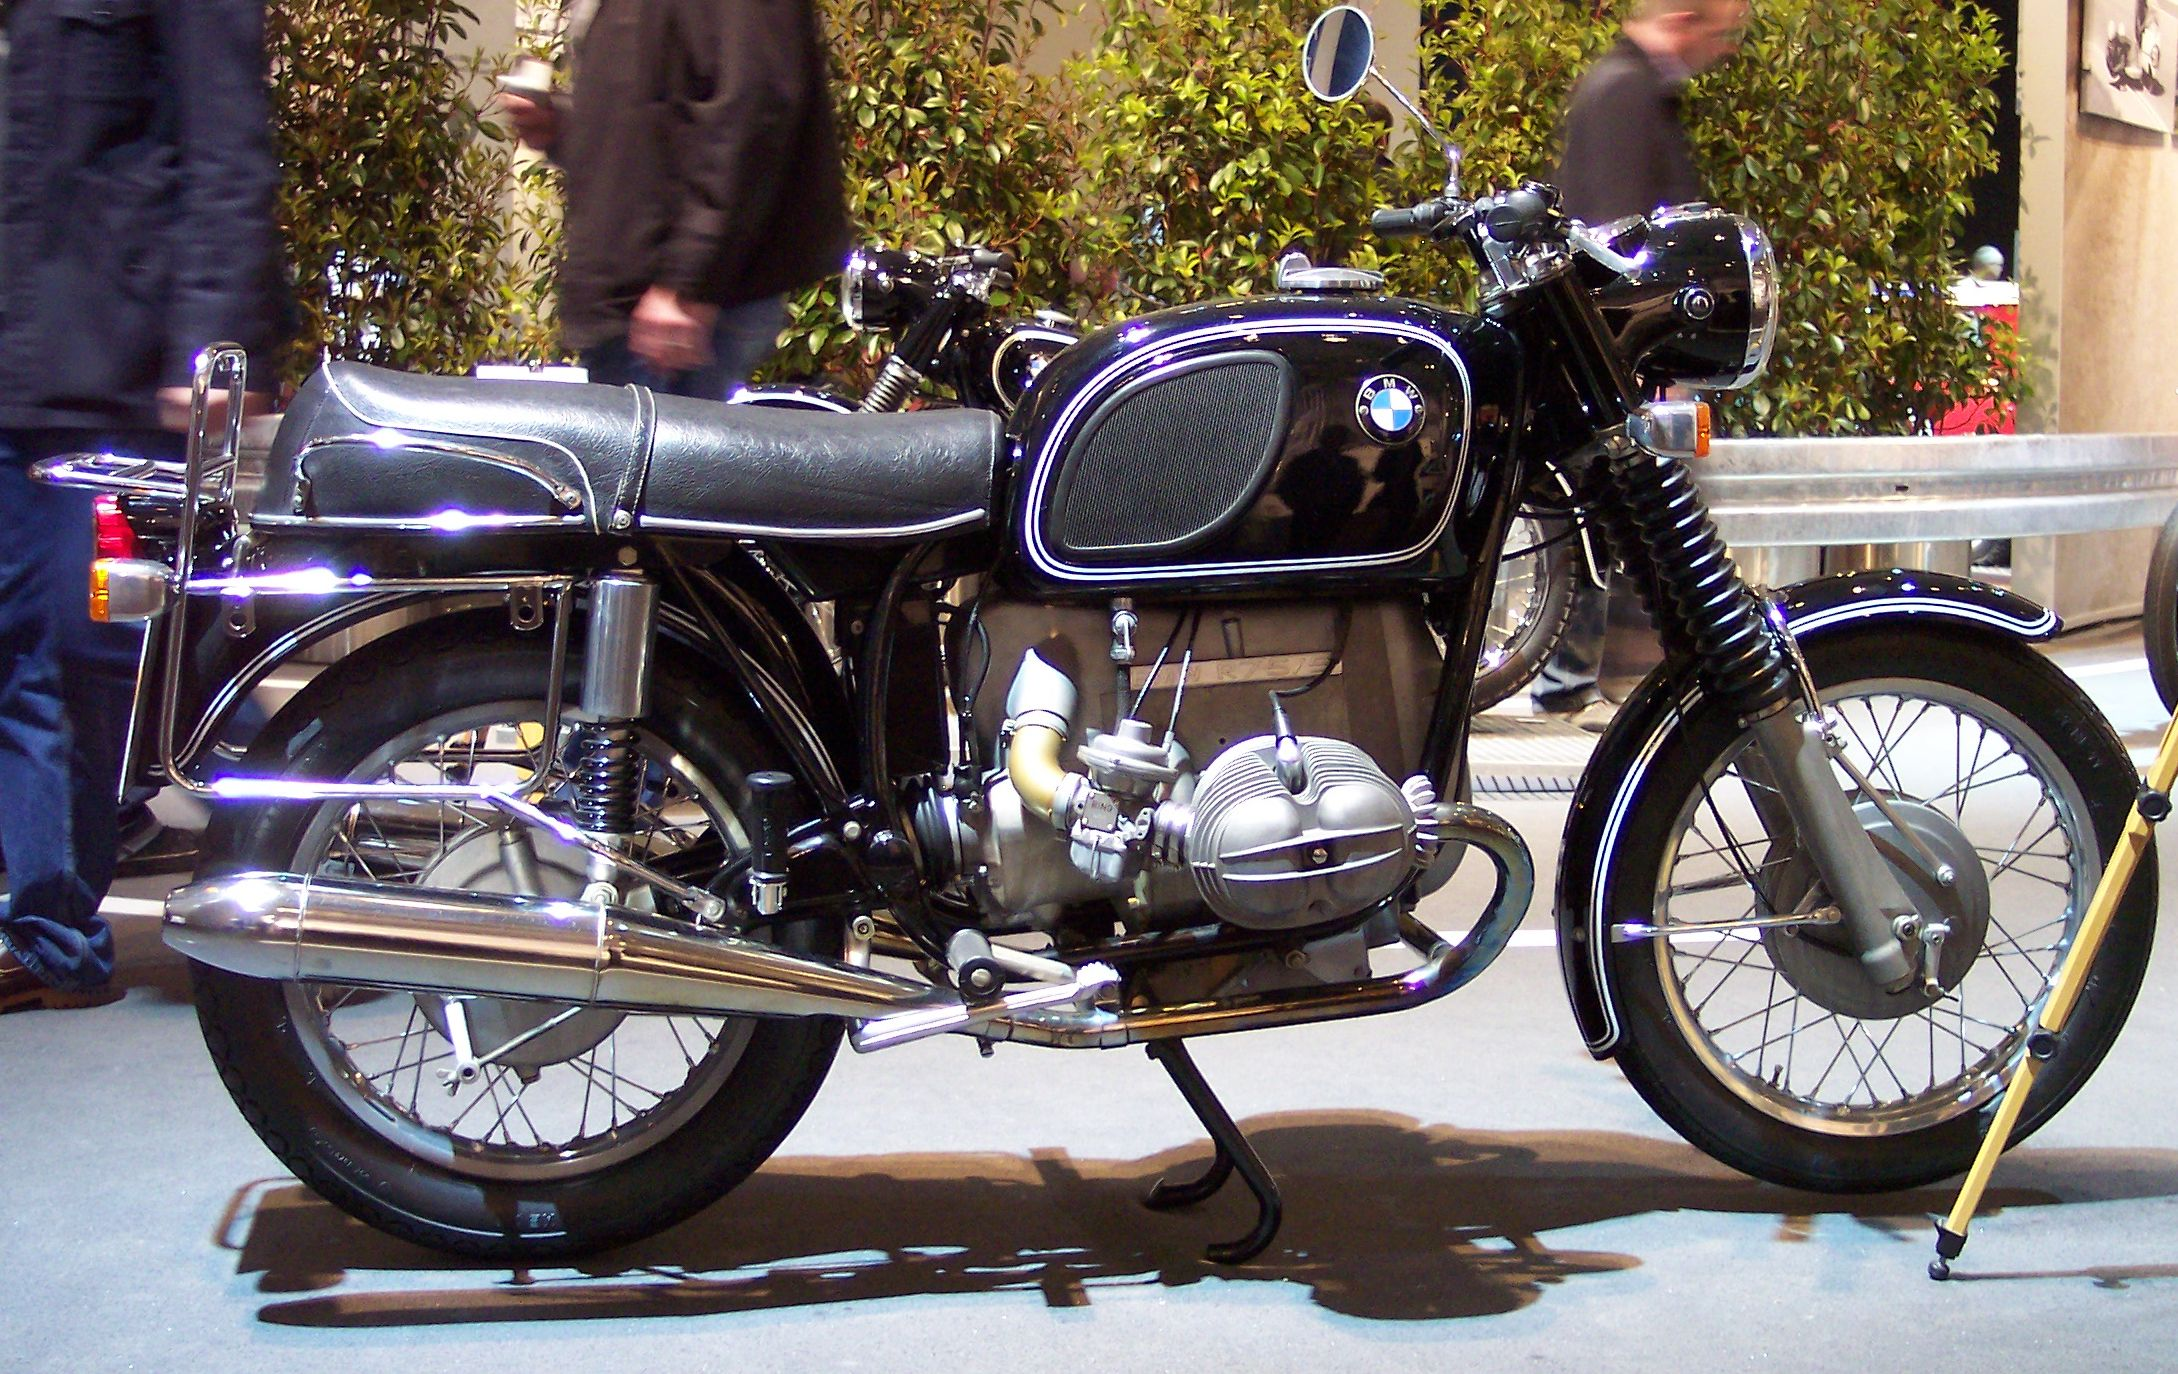 BMW R100RT Mono 1989 images #5399